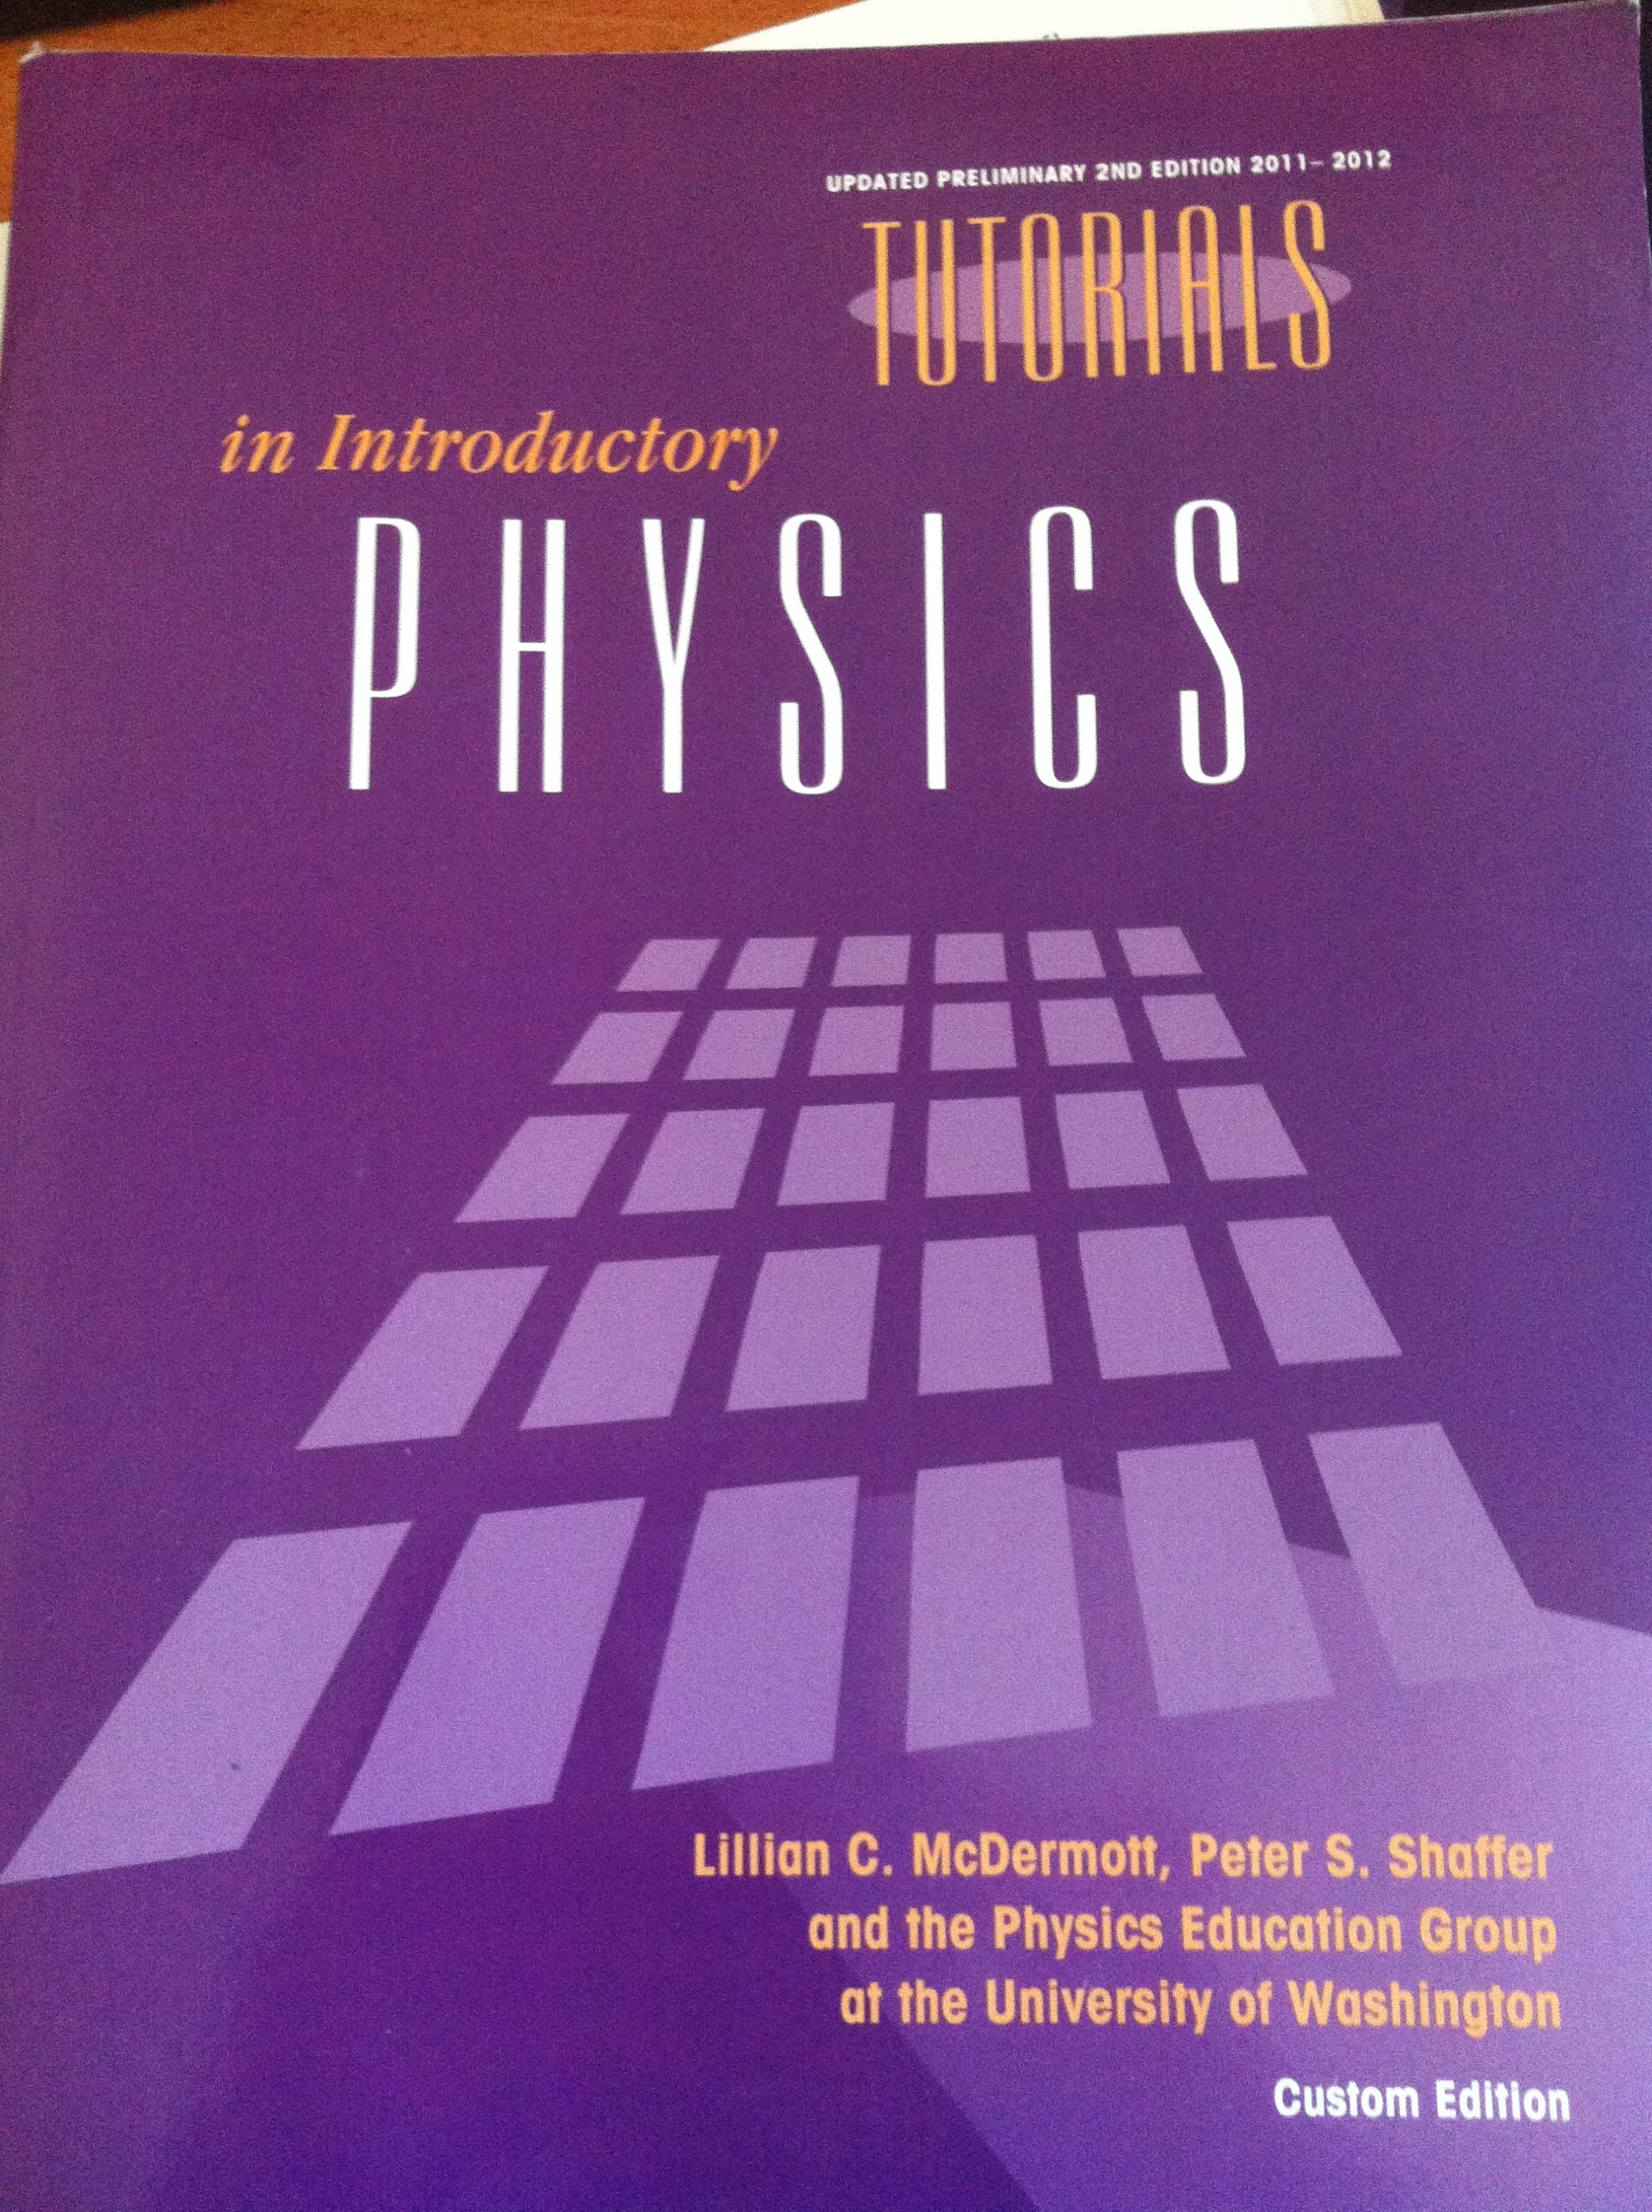 Tutorials in Introductory Physics Updated Preliminary Second Edition  2011-2012: Lillian C, Peter S. Shaffer McDermott: 9781256371908:  Amazon.com: Books